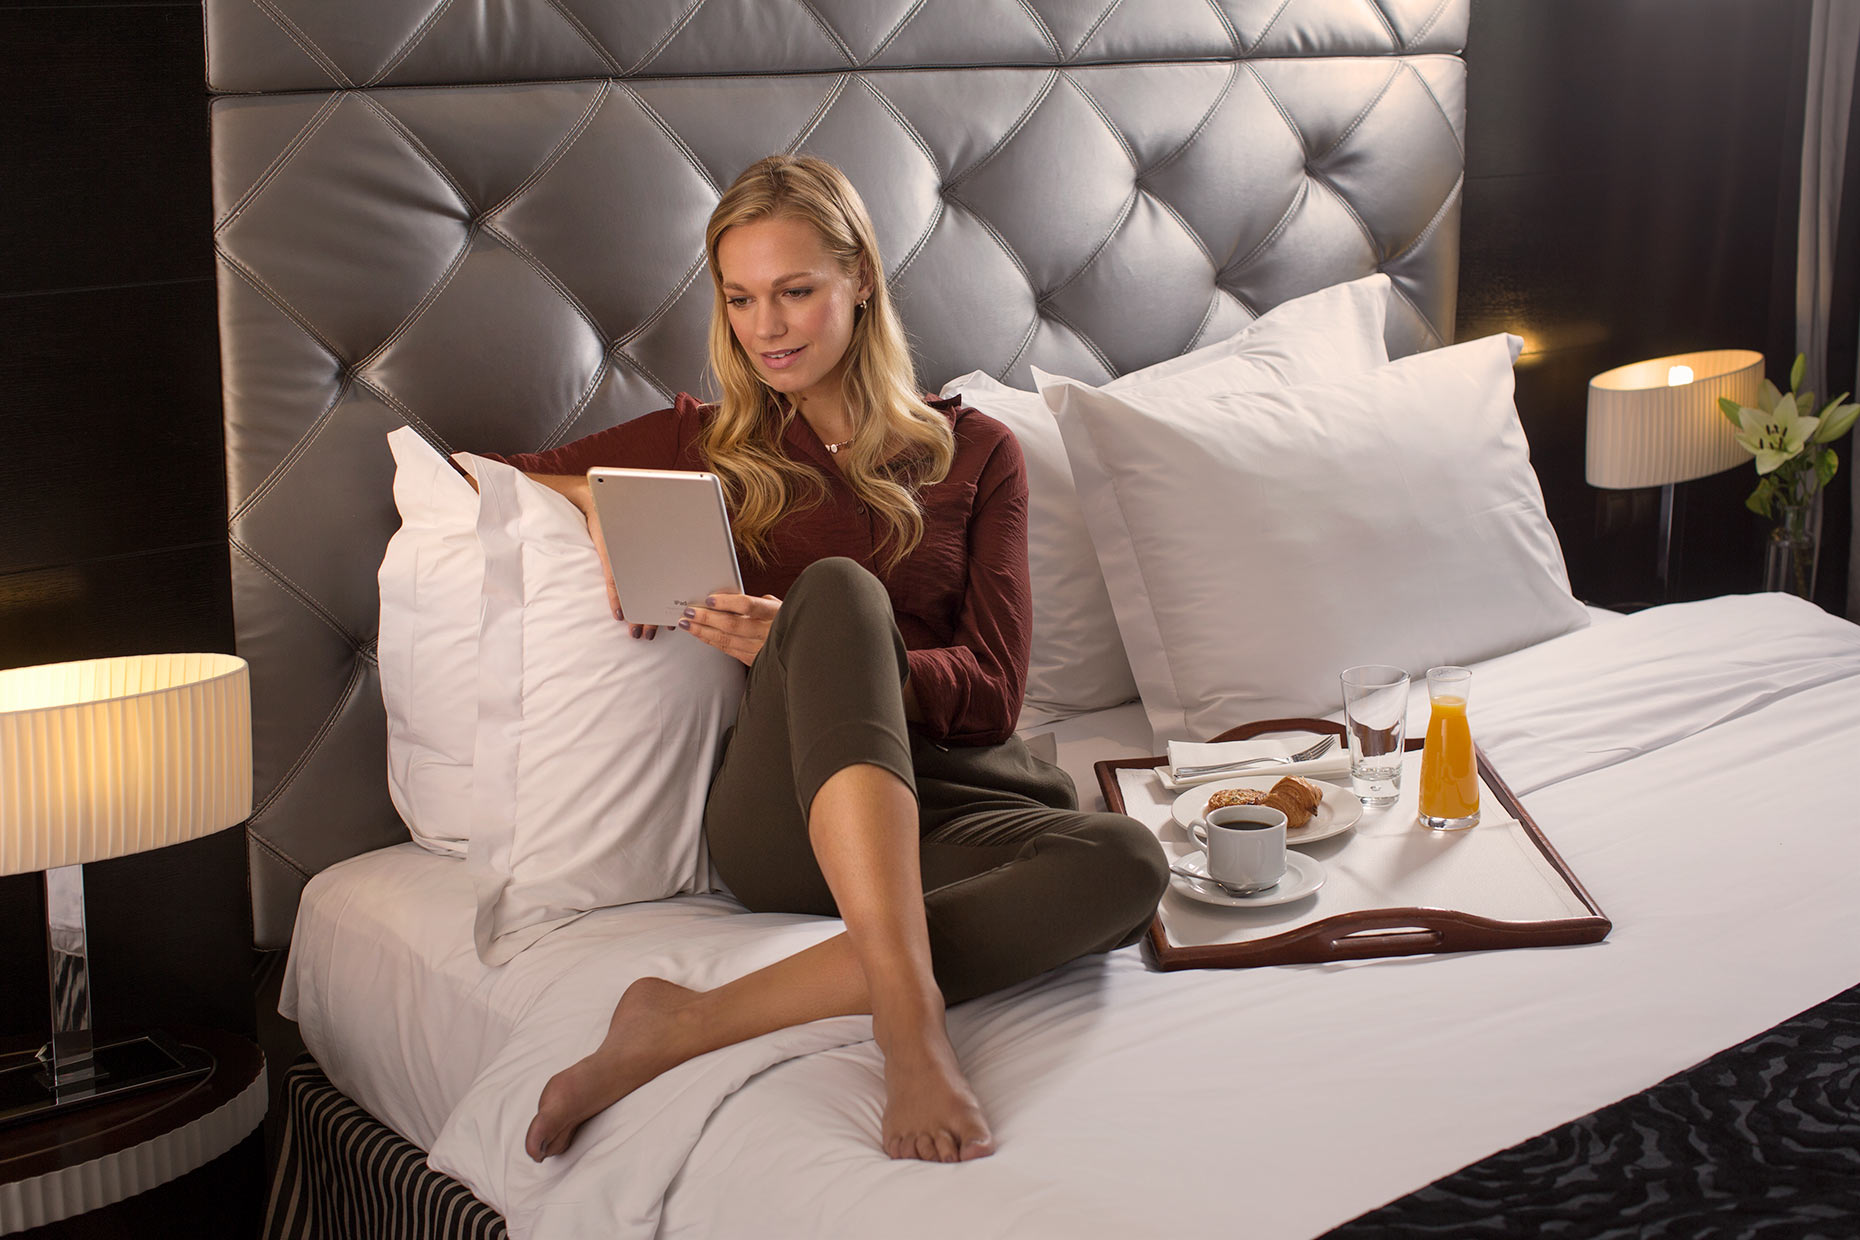 woman sitting on bed in hotel with tablet